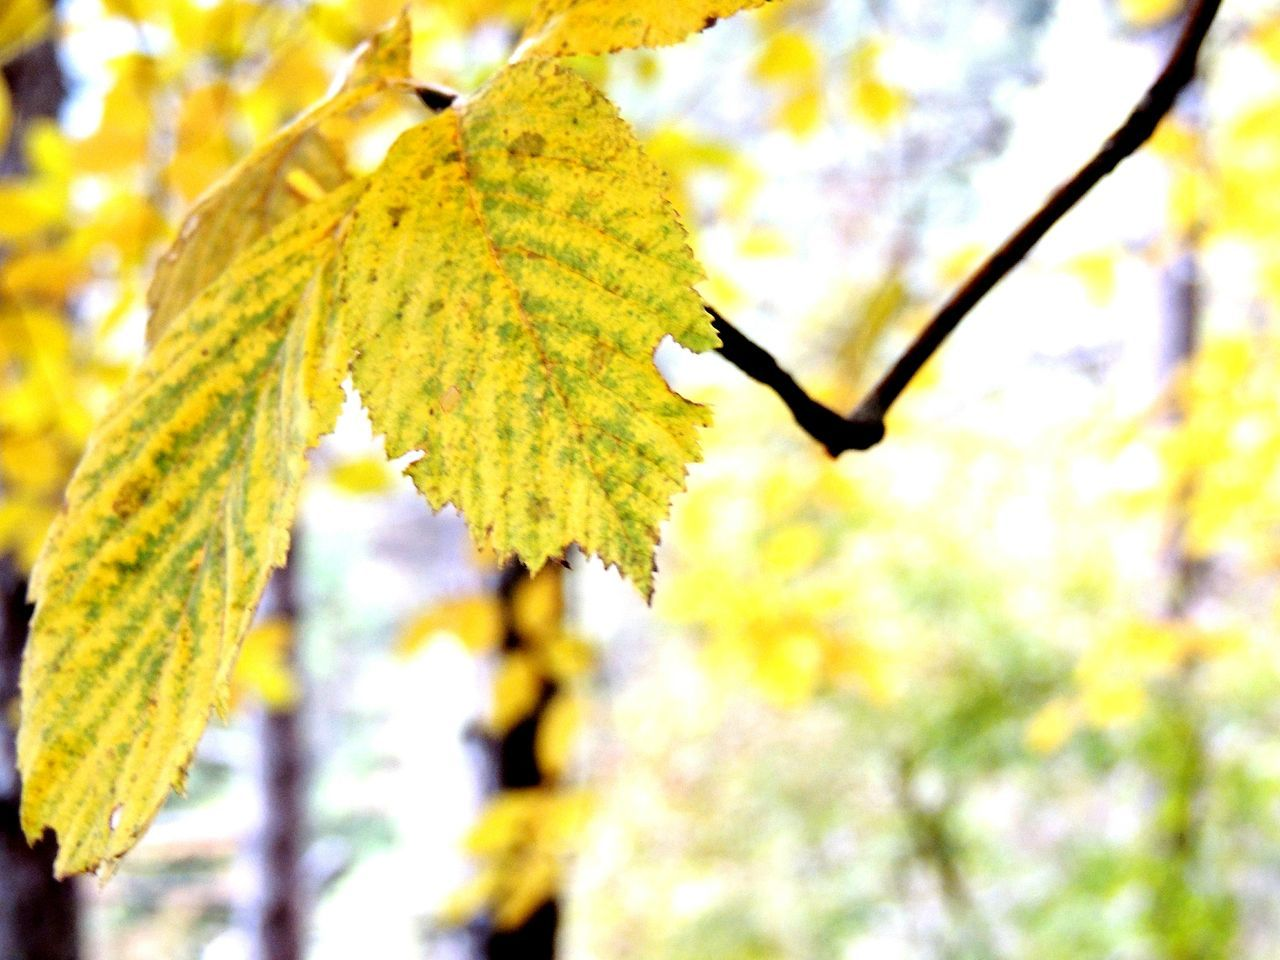 Animal Themes Animals In The Wild Beauty In Nature Branch Close-up Day Focus On Foreground Growth Leaf Low Angle View Nature No People Outdoors Tree Leaf 🍂 Leafs 🍃 Leafs Photography Leafs Colors Leafs Leafscape Leafs. Autumn Autumn Colors Autumn🍁🍁🍁 Fresh On Eyeem